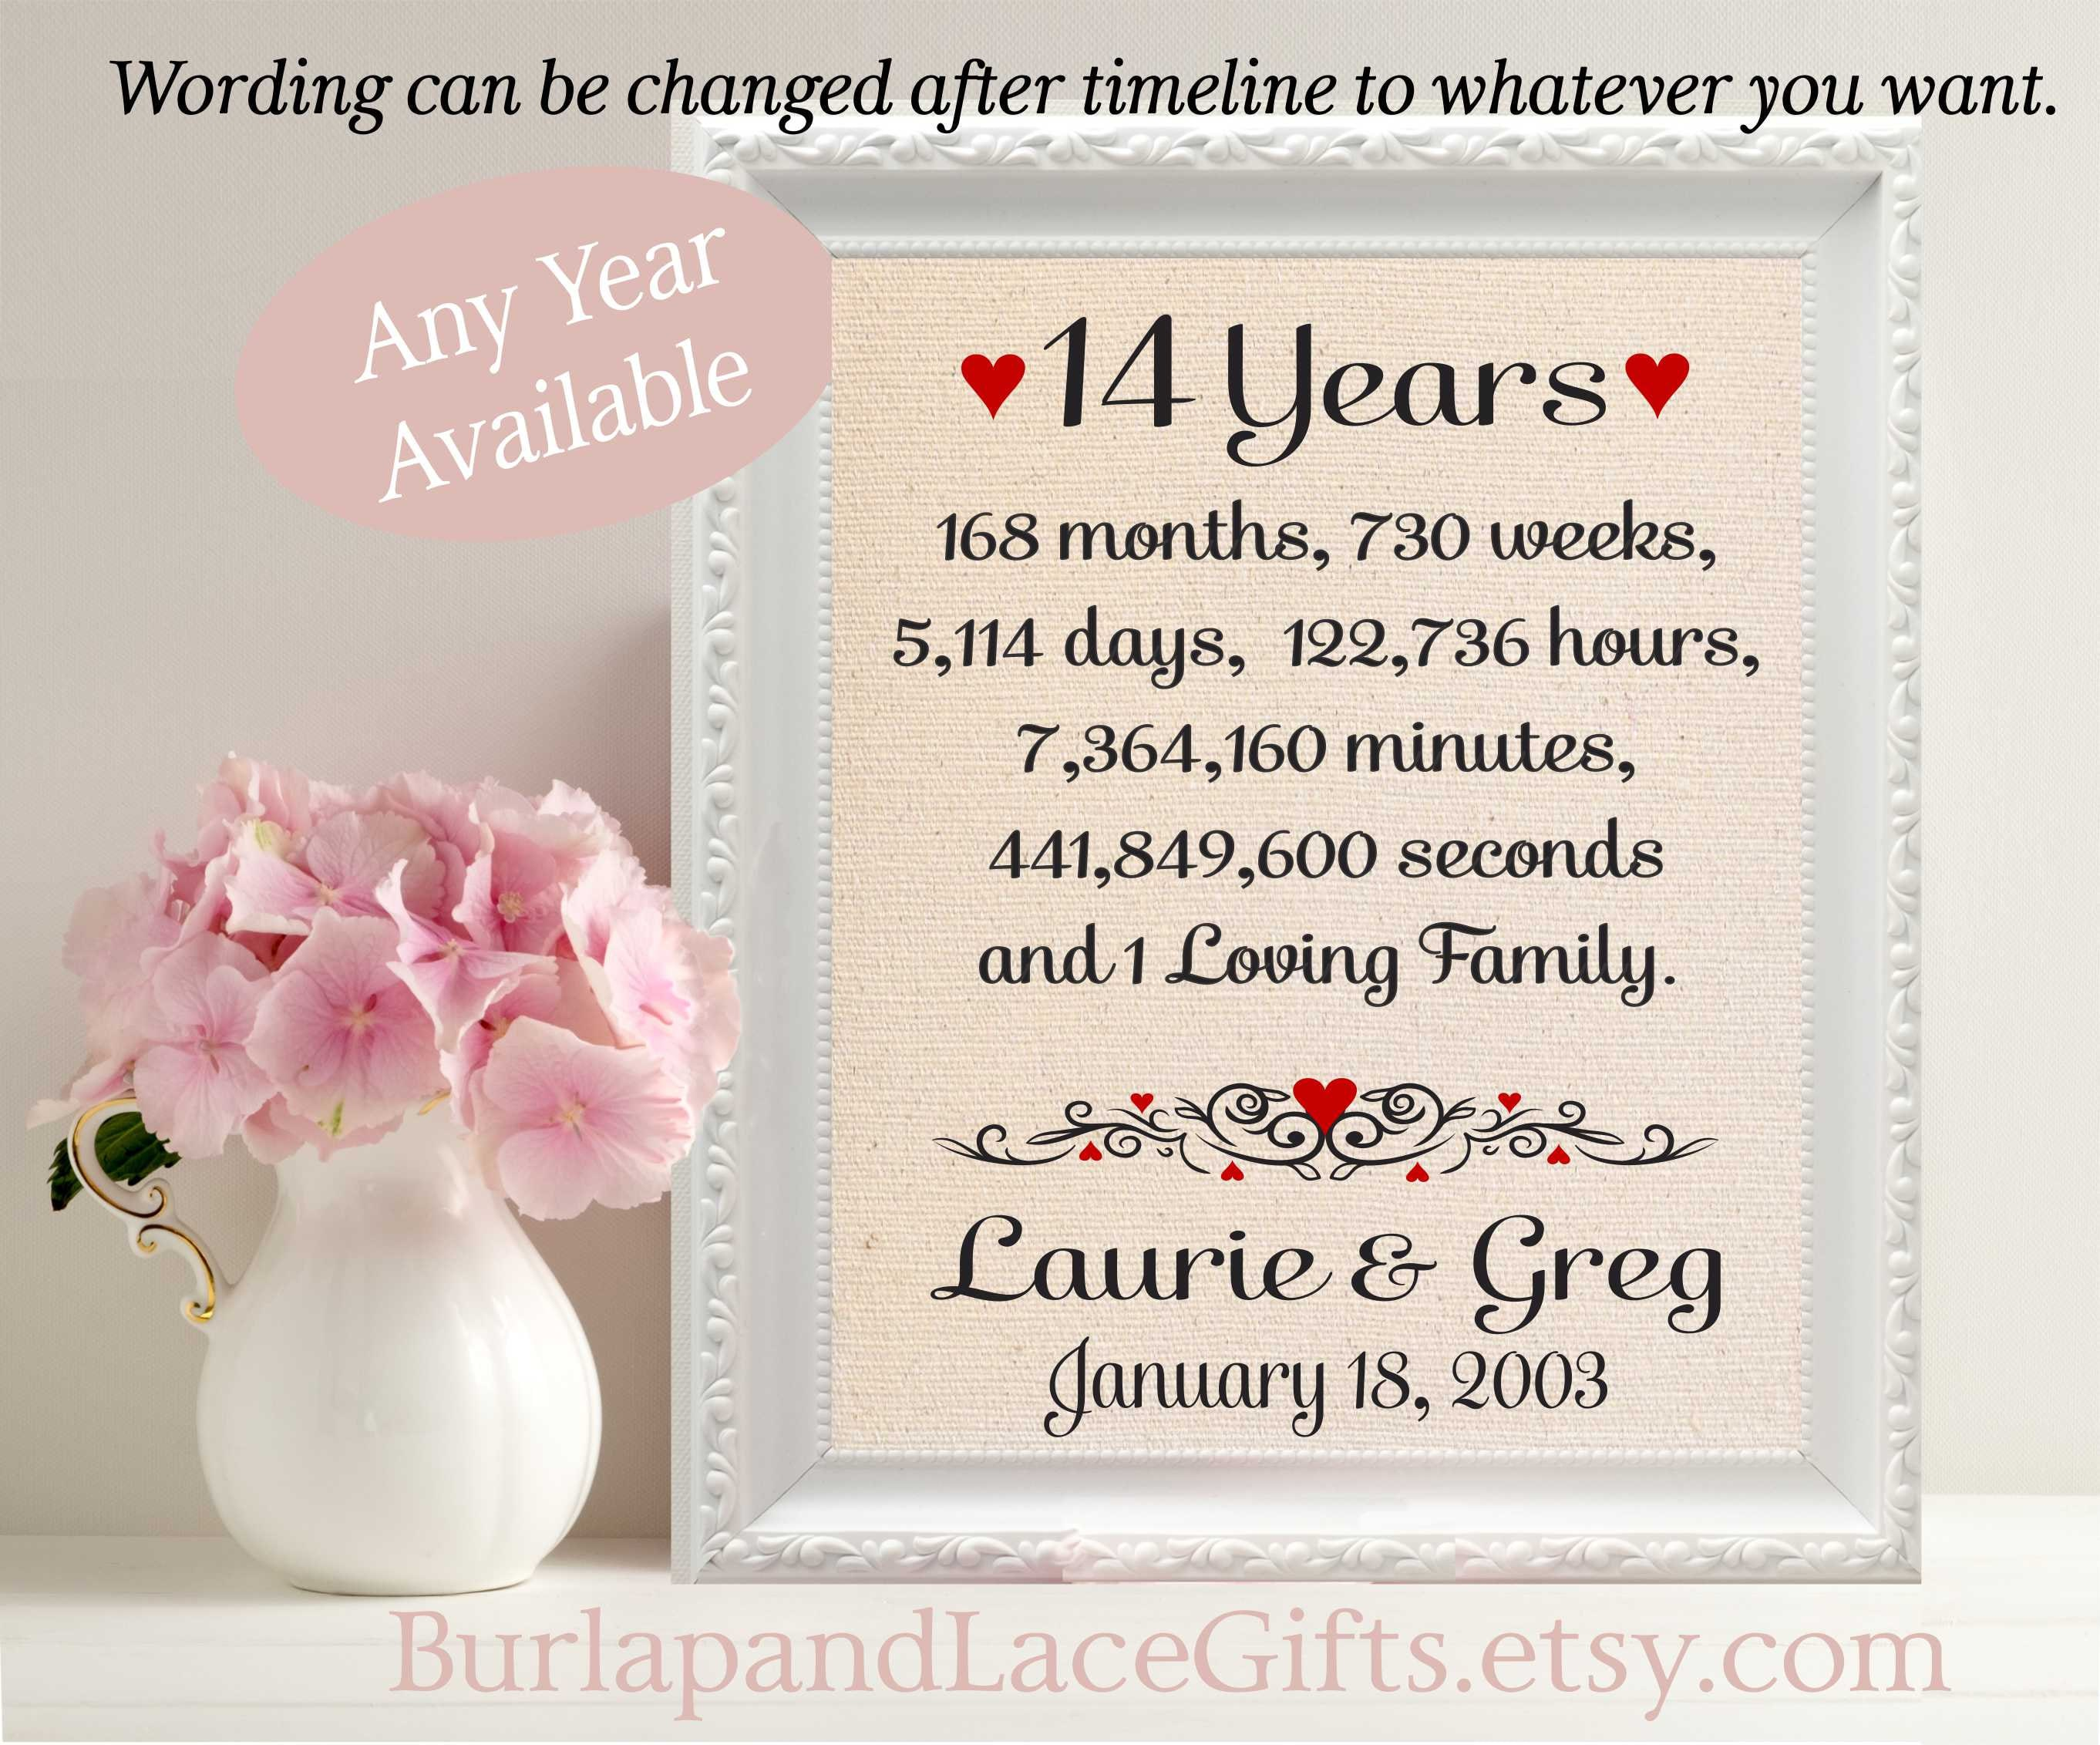 What Is The Gift For 14th Wedding Anniversary